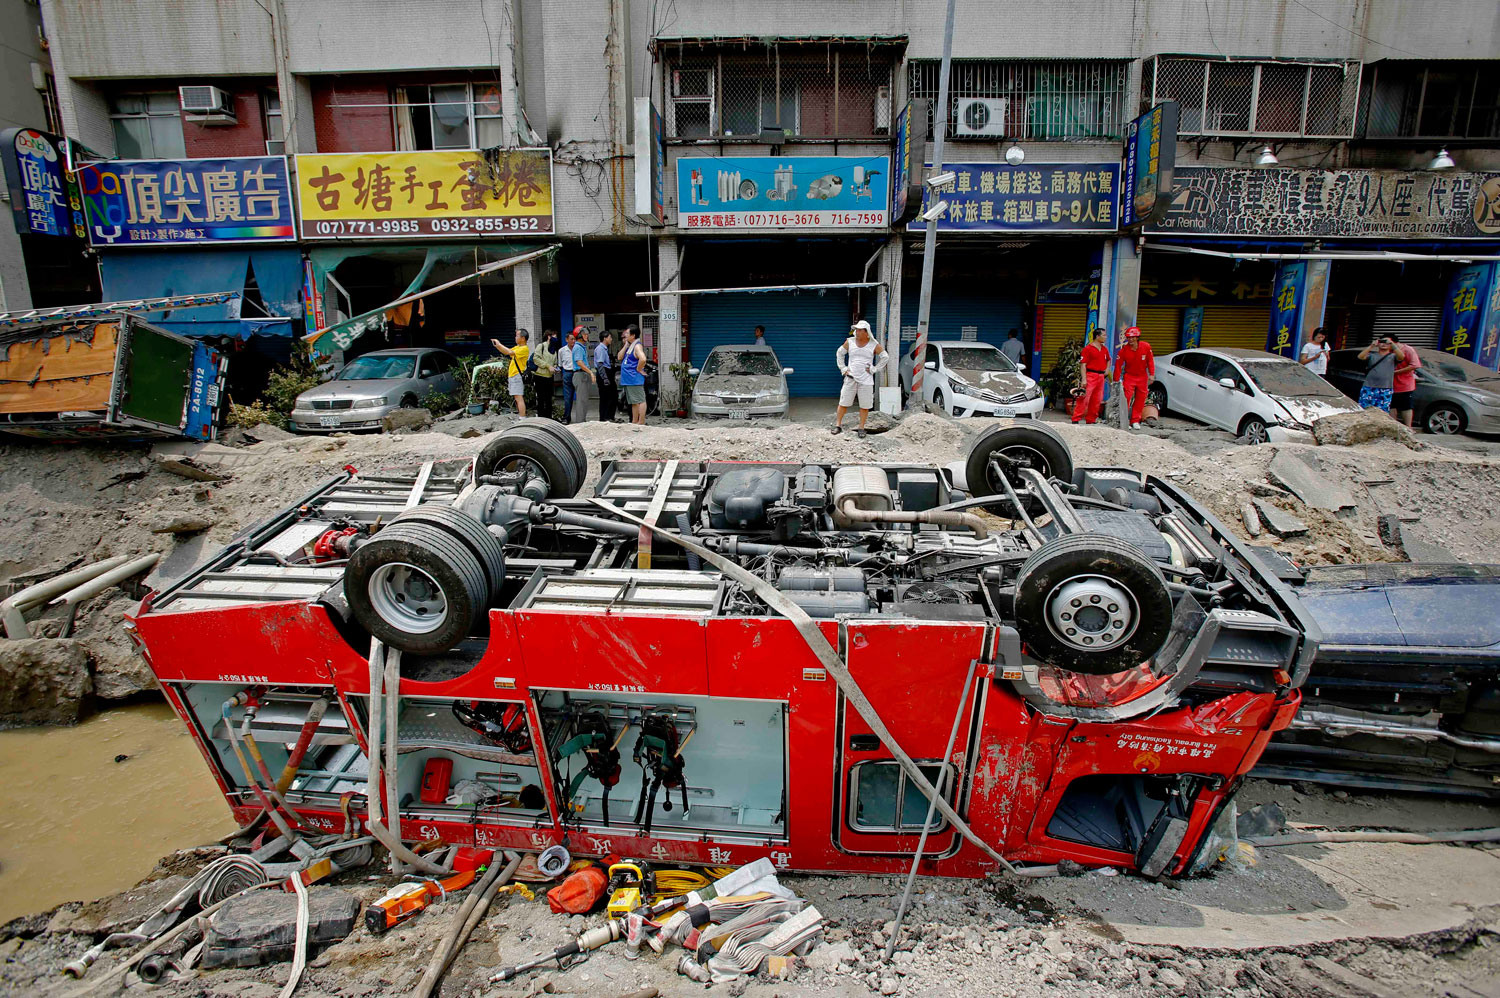 A destroyed fire truck is seen overturned in the rubble after massive gas explosions in Kaohsiung, Taiwan, Friday, Aug. 1, 2014. A series of underground explosions about midnight Thursday and early Friday ripped through Taiwan's second-largest city, killing scores of people, Taiwan's National Fire Agency said.